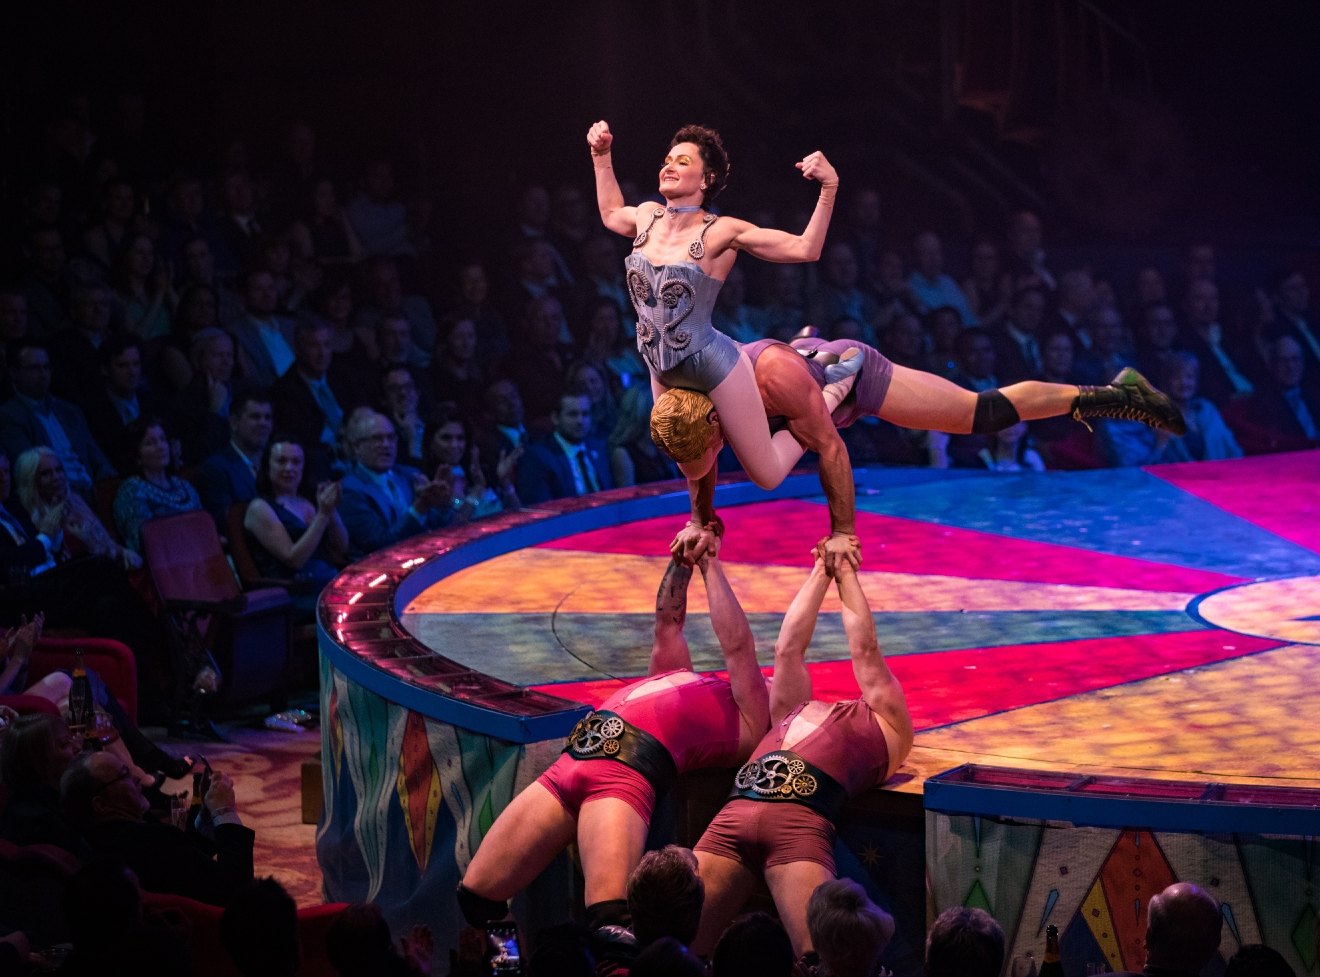 One Night for One Drop features some of the world's most daring circus acts, March 3, 2017. (Photo courtesy of Erik Kabik/ErikKabik.com)